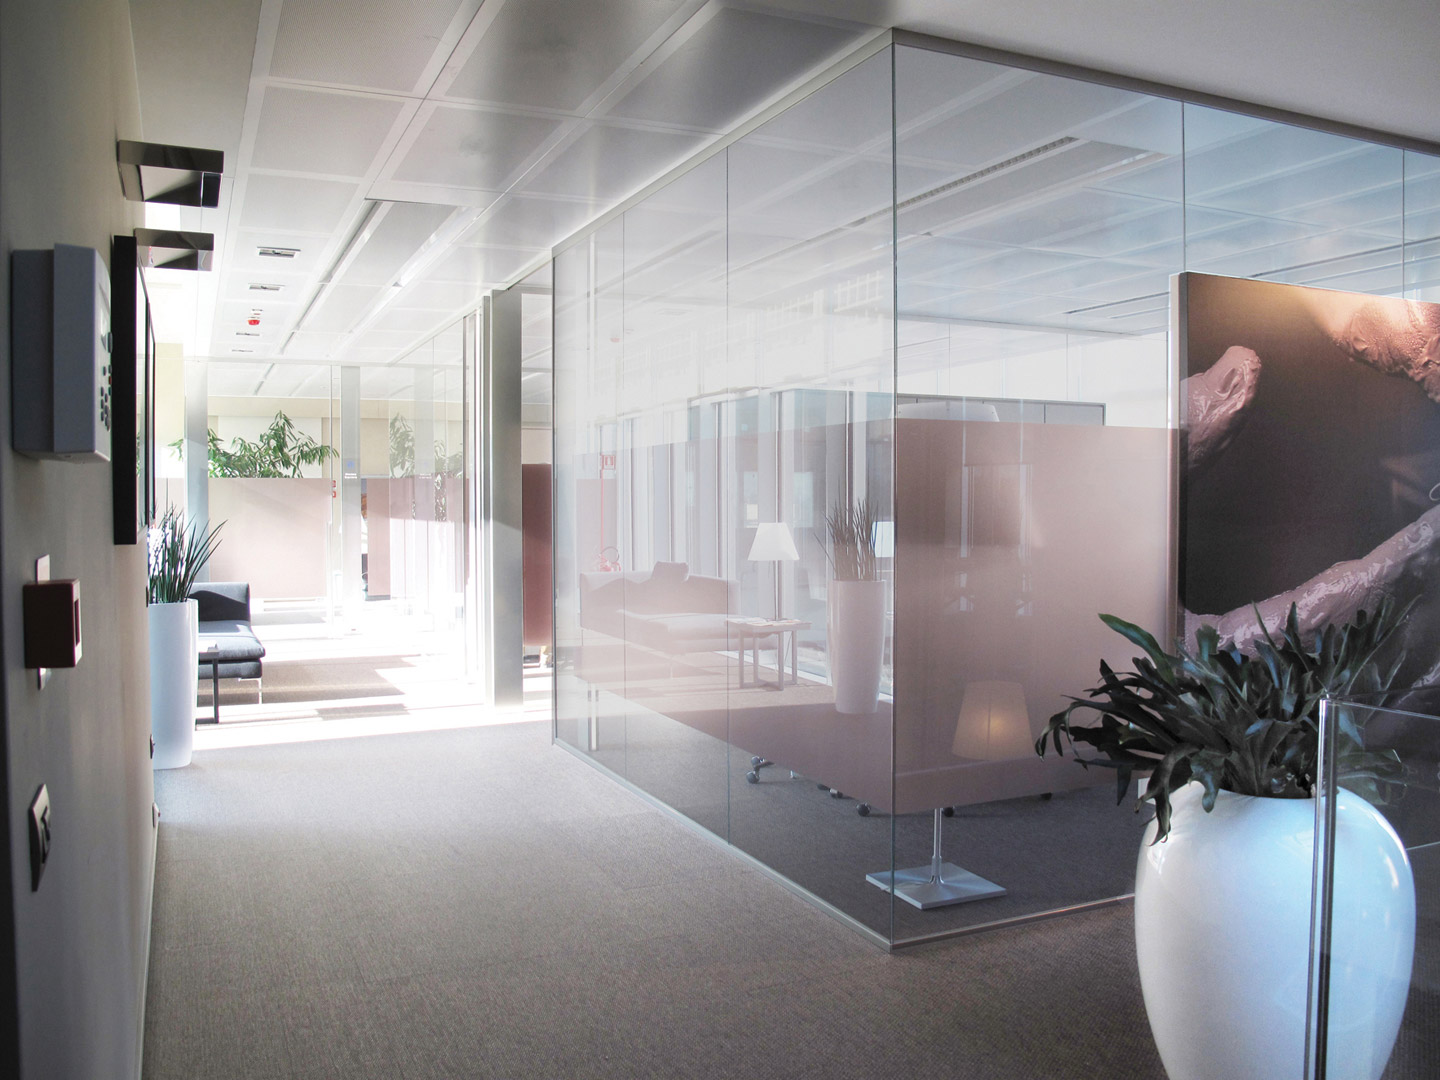 Demountable and fitted wall partitions for offices: designed